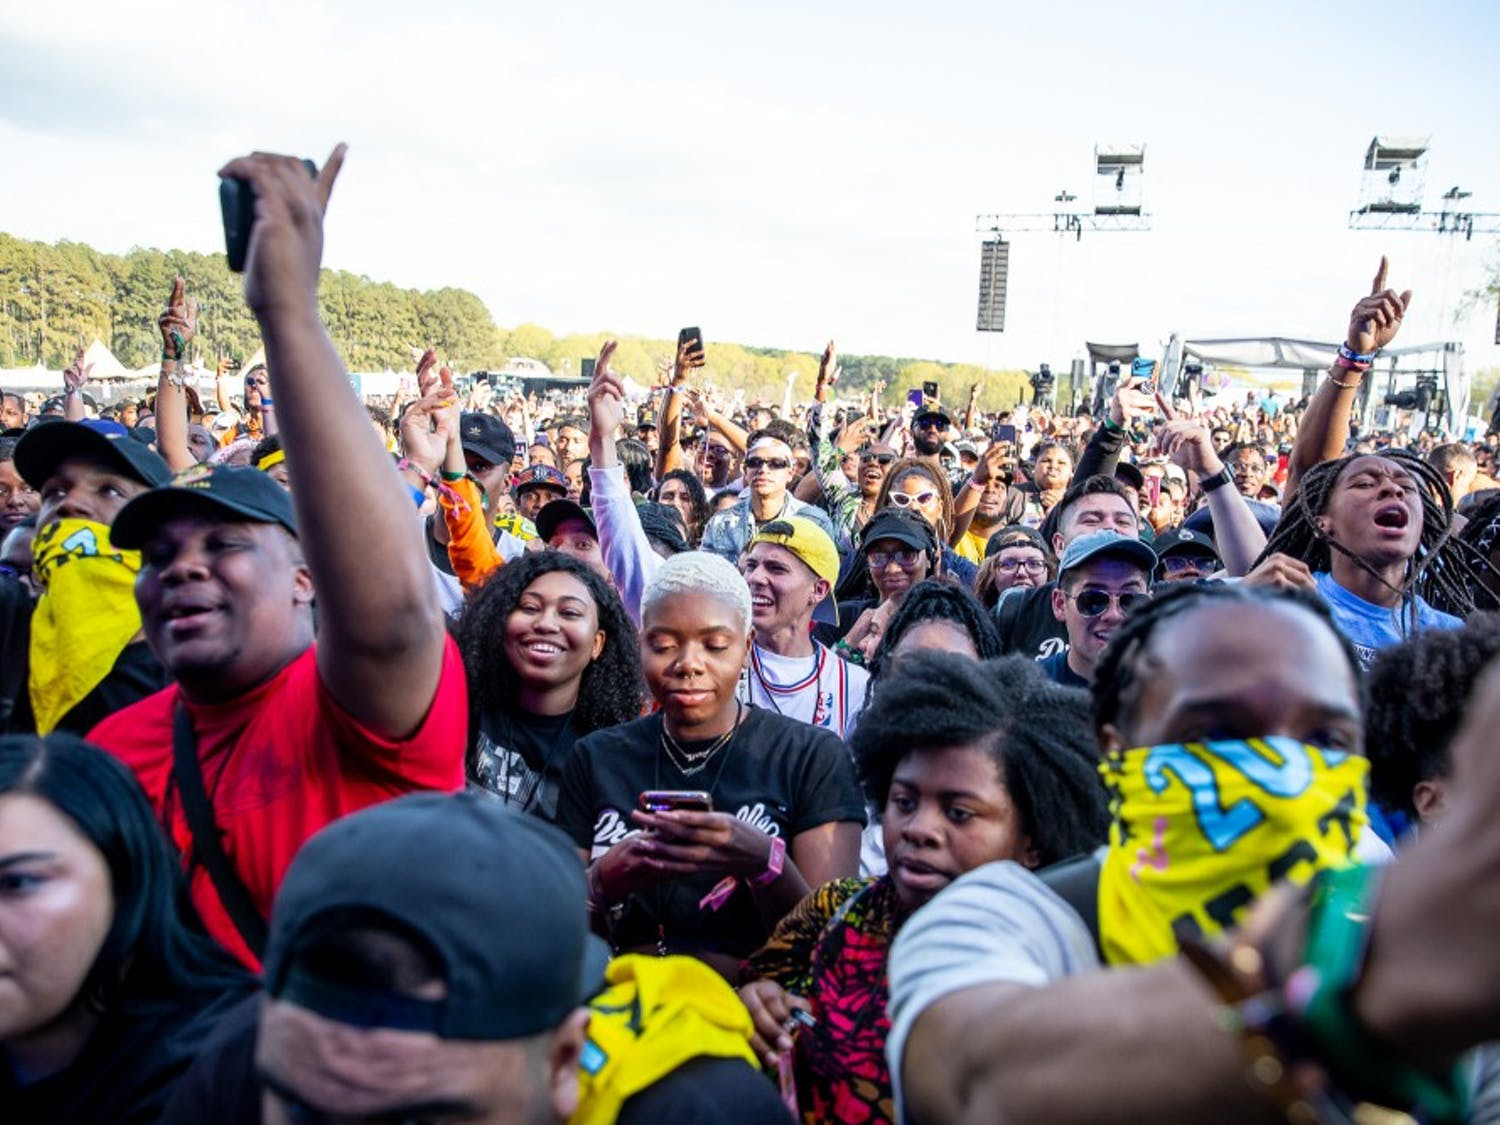 The crowd raps along to J.I.D's performance at the inaugural Dreamville Fest at Dorothea Dix Park on Saturday, April 6, 2019 in Raleigh, N.C. In its inaugural event, 40,000 people attended Dreamville after it was postponed in the fall of 2018 because of Hurricane Florence.